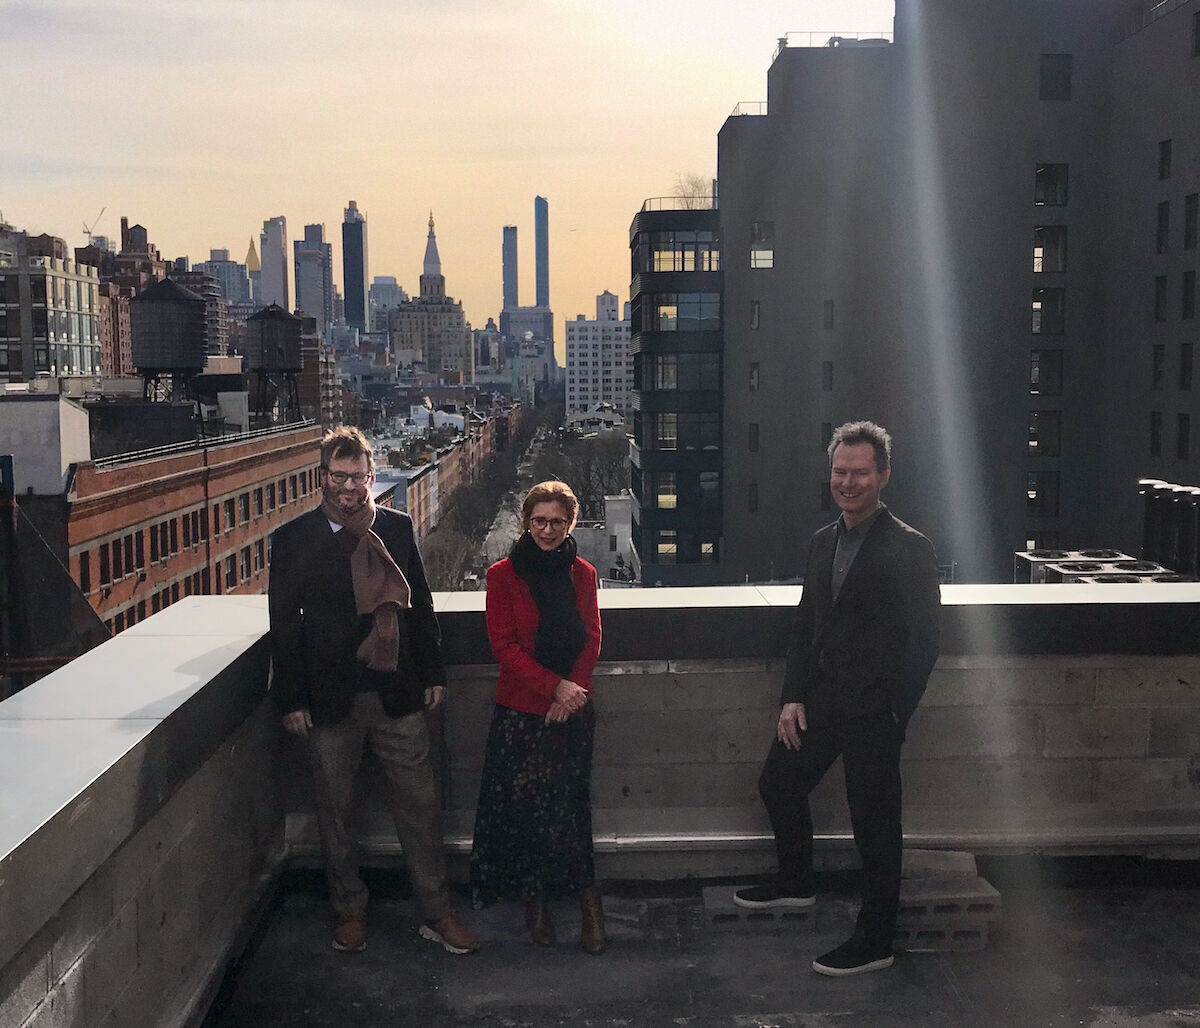 From left to right: Iwan Wirth, Manuela Wirth, and Marc Payot in early February 2020. Photo courtesy of Hauser & Wirth.